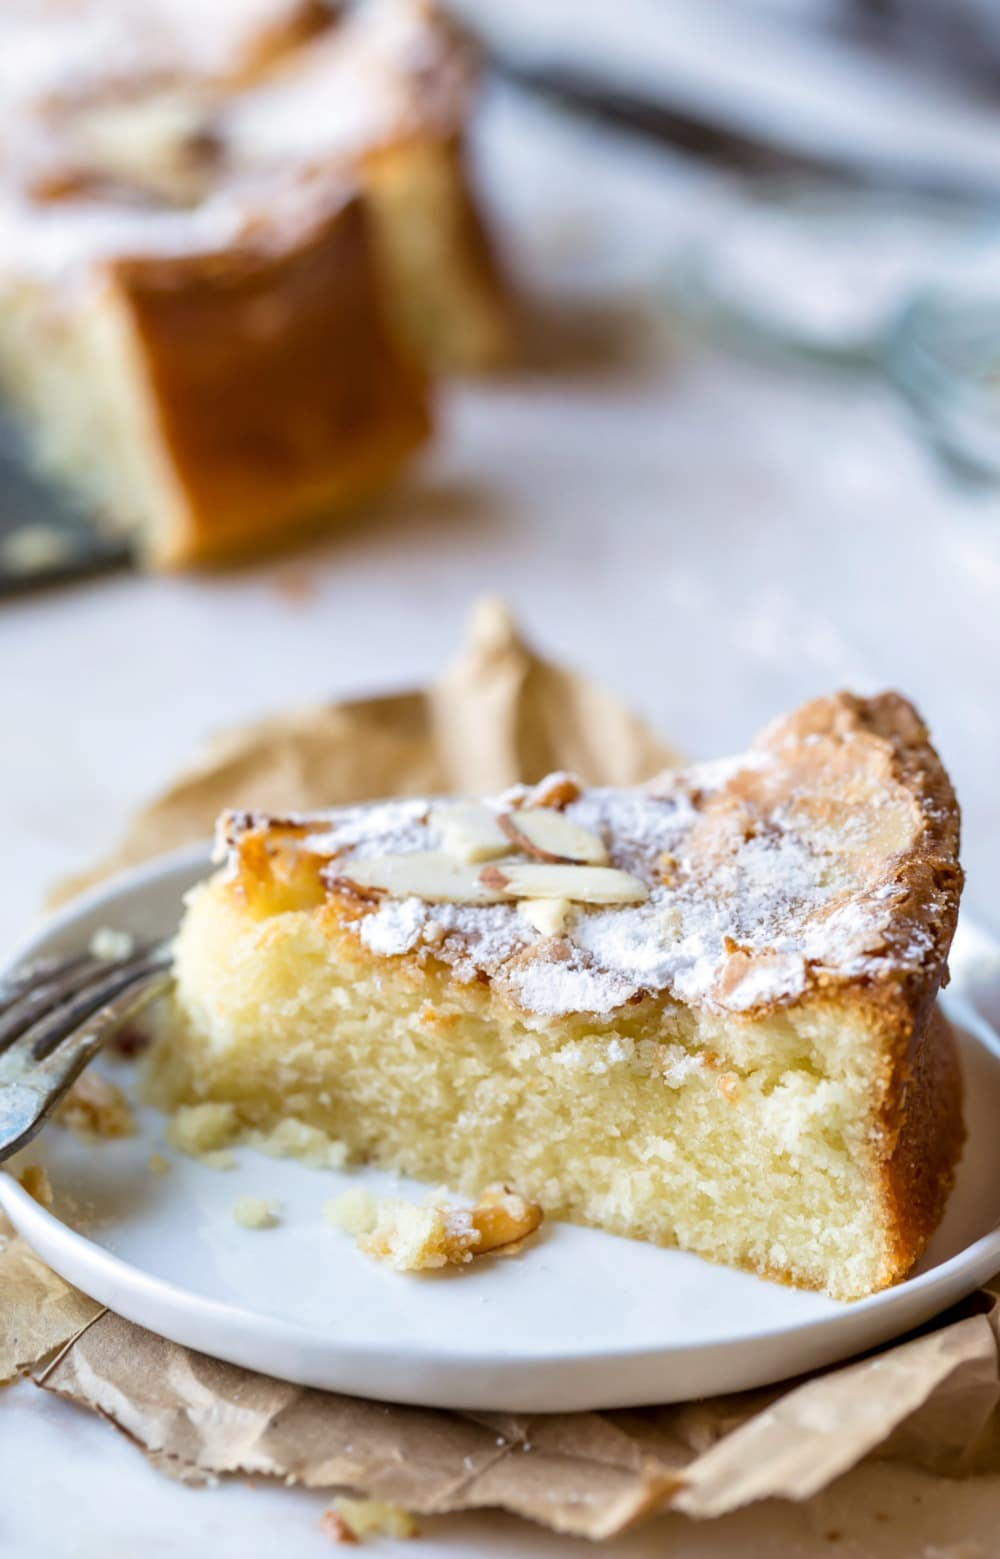 Slice of olive oil cake on a white next next to a fork